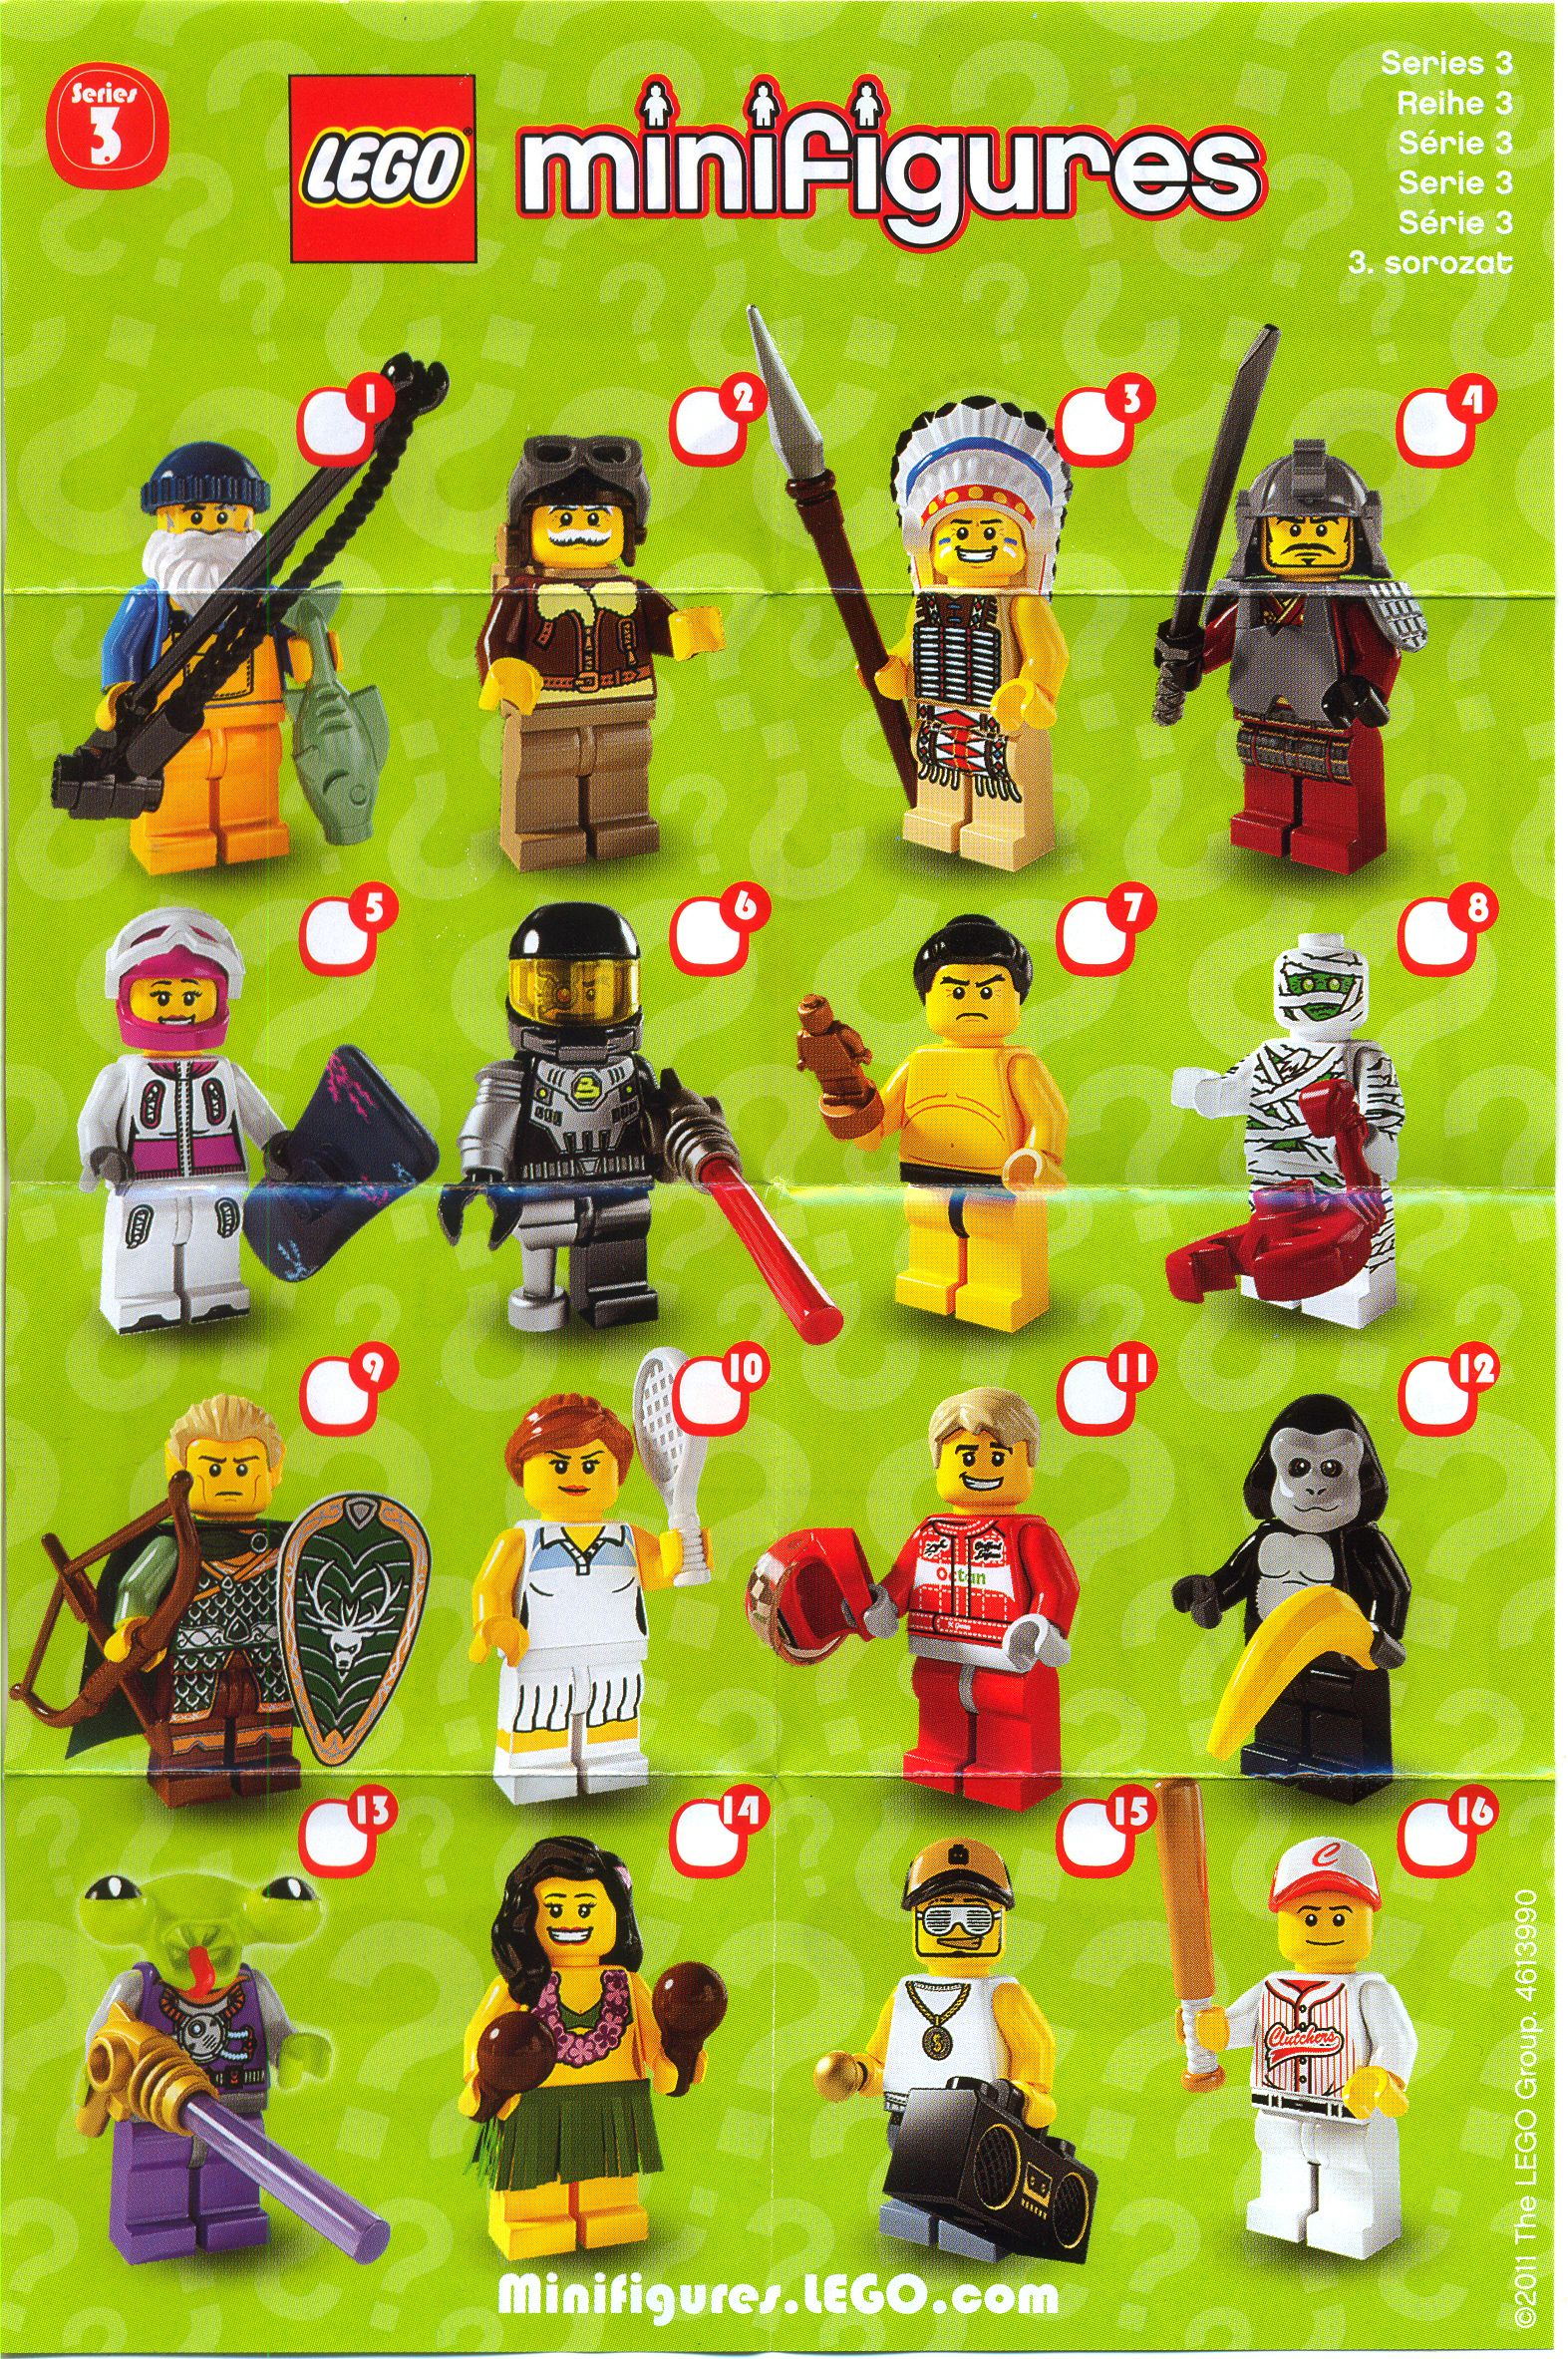 lego minifigures series 3 collection my legos pinterest lego legos and lego minifigs. Black Bedroom Furniture Sets. Home Design Ideas